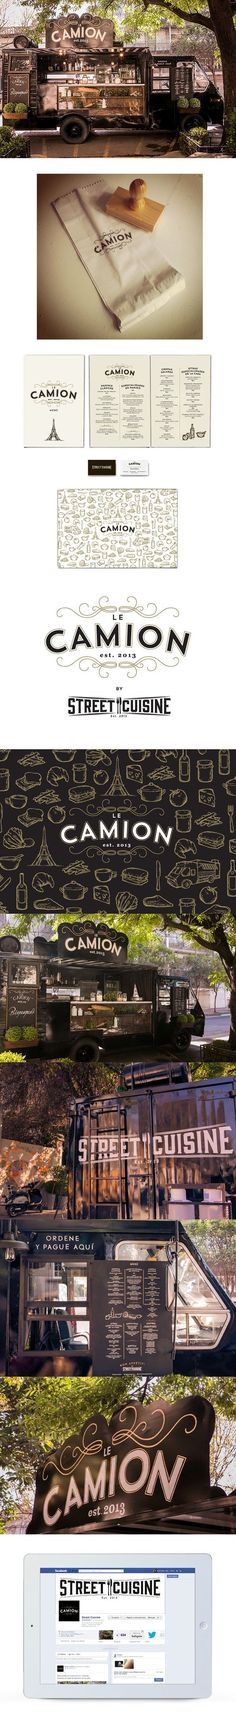 Le Camion on Behance..